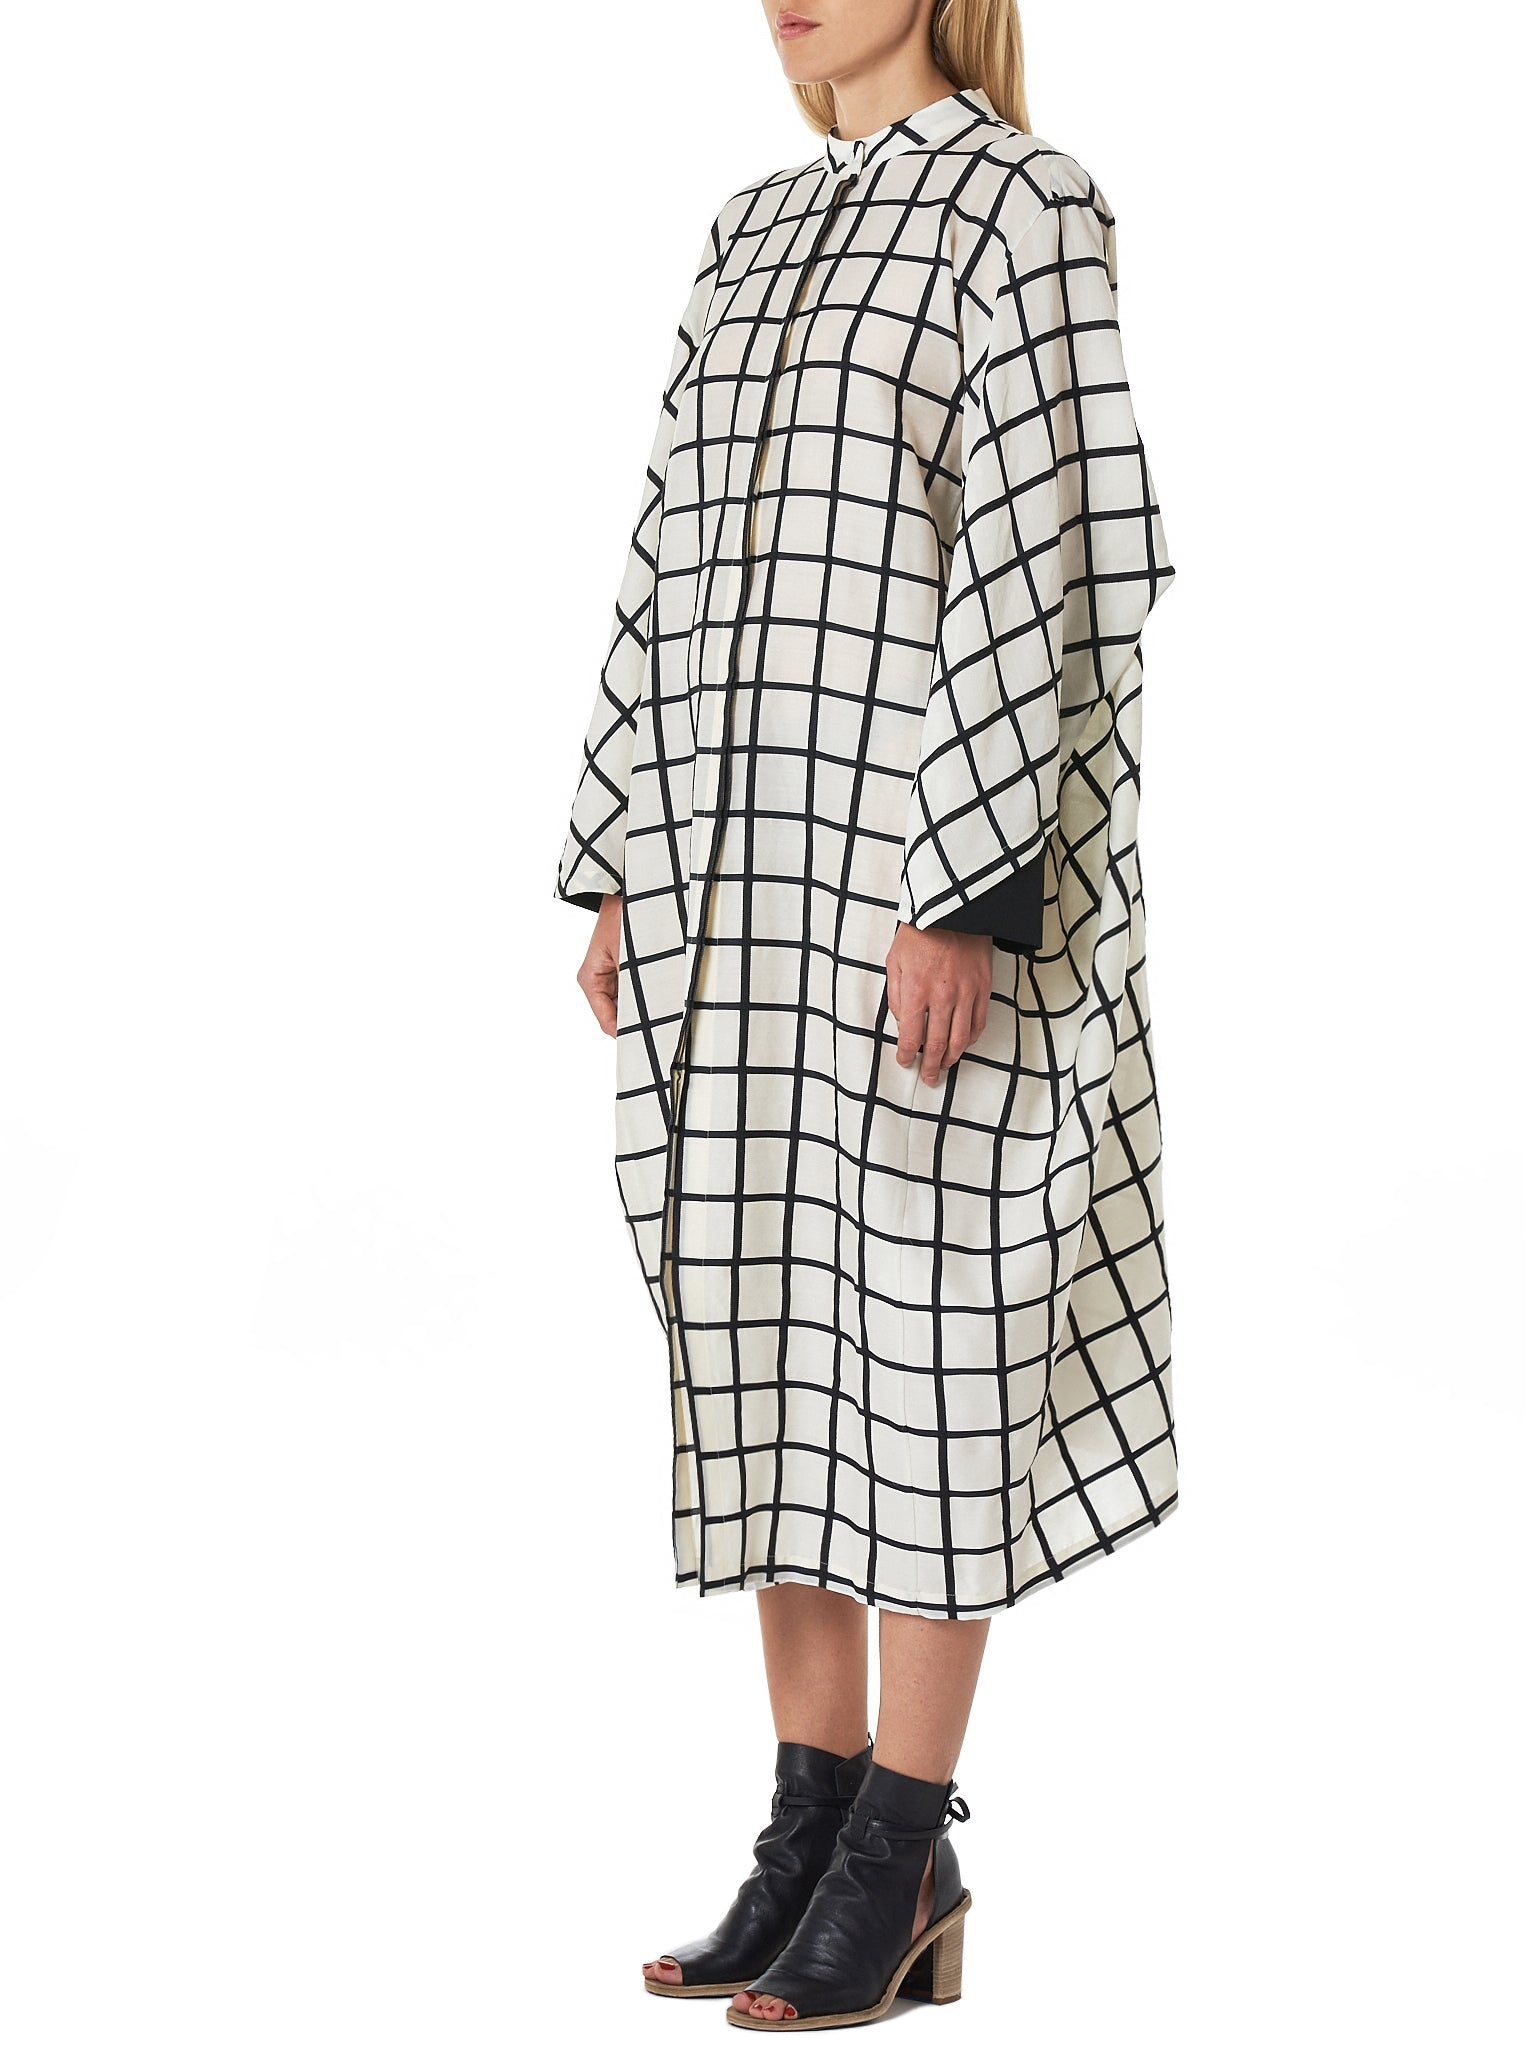 'Mondrian' Wide Dress (D09F19-MONDRIAN-WHITE-BLACK)